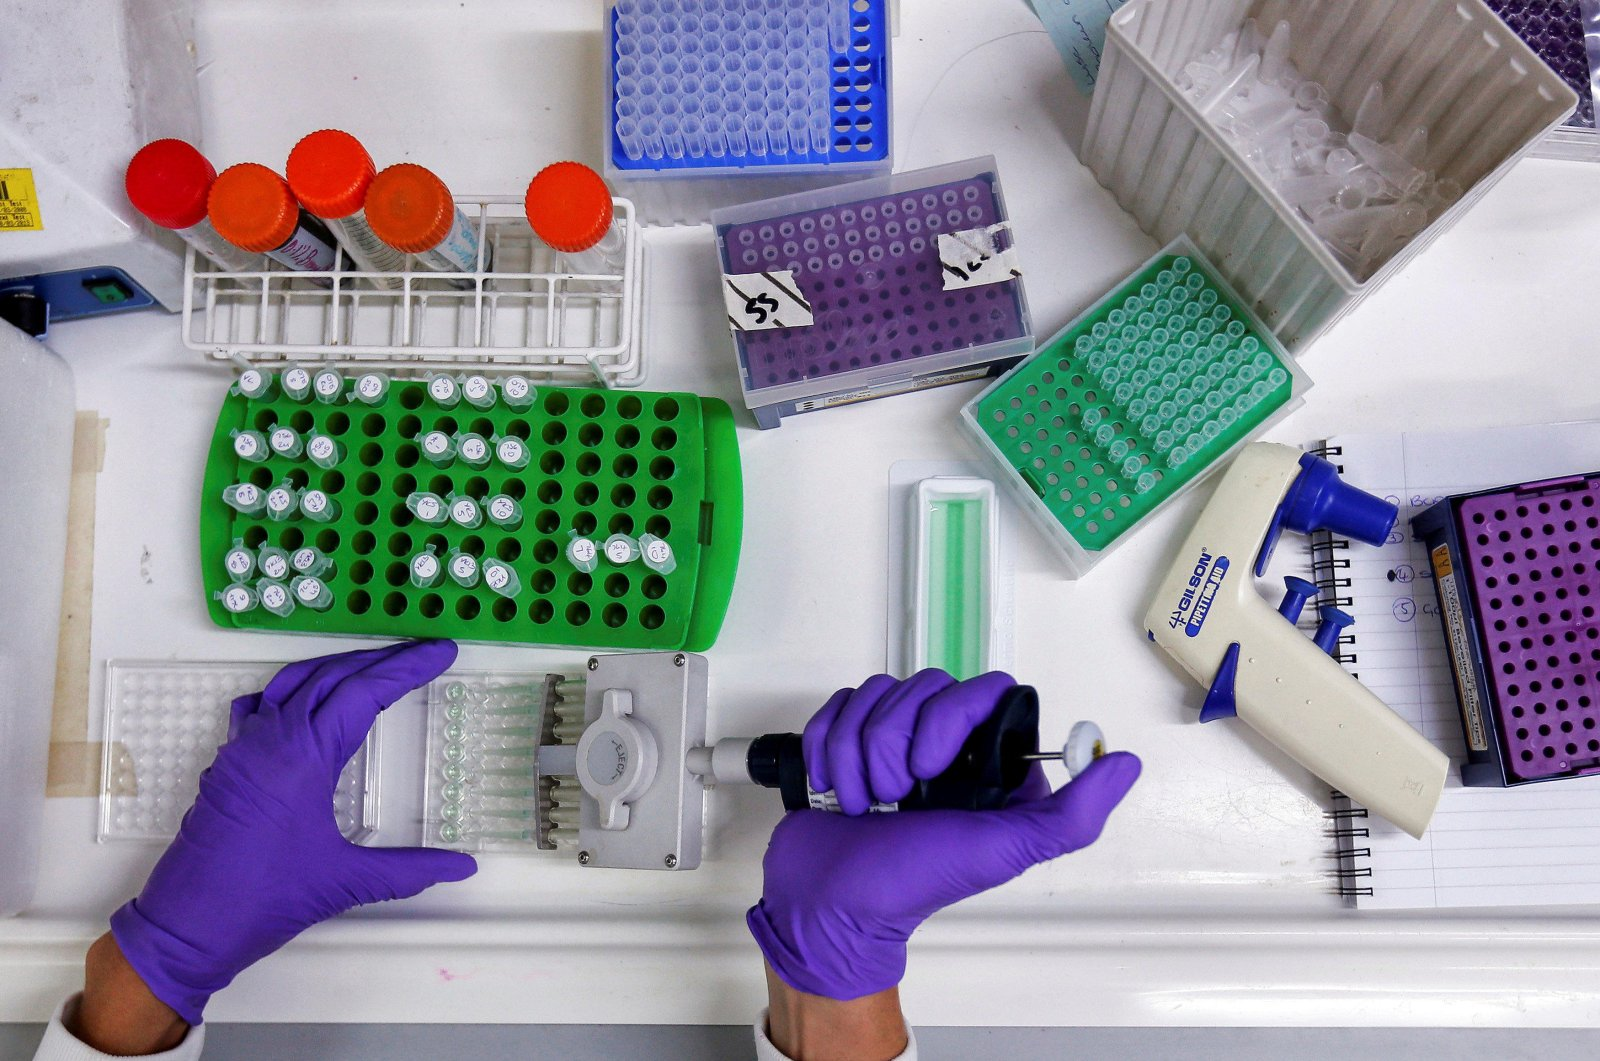 A scientist prepares protein samples for analysis in a lab at the Institute of Cancer in Sutton, England on July 15, 2013. (Reuters Photo)